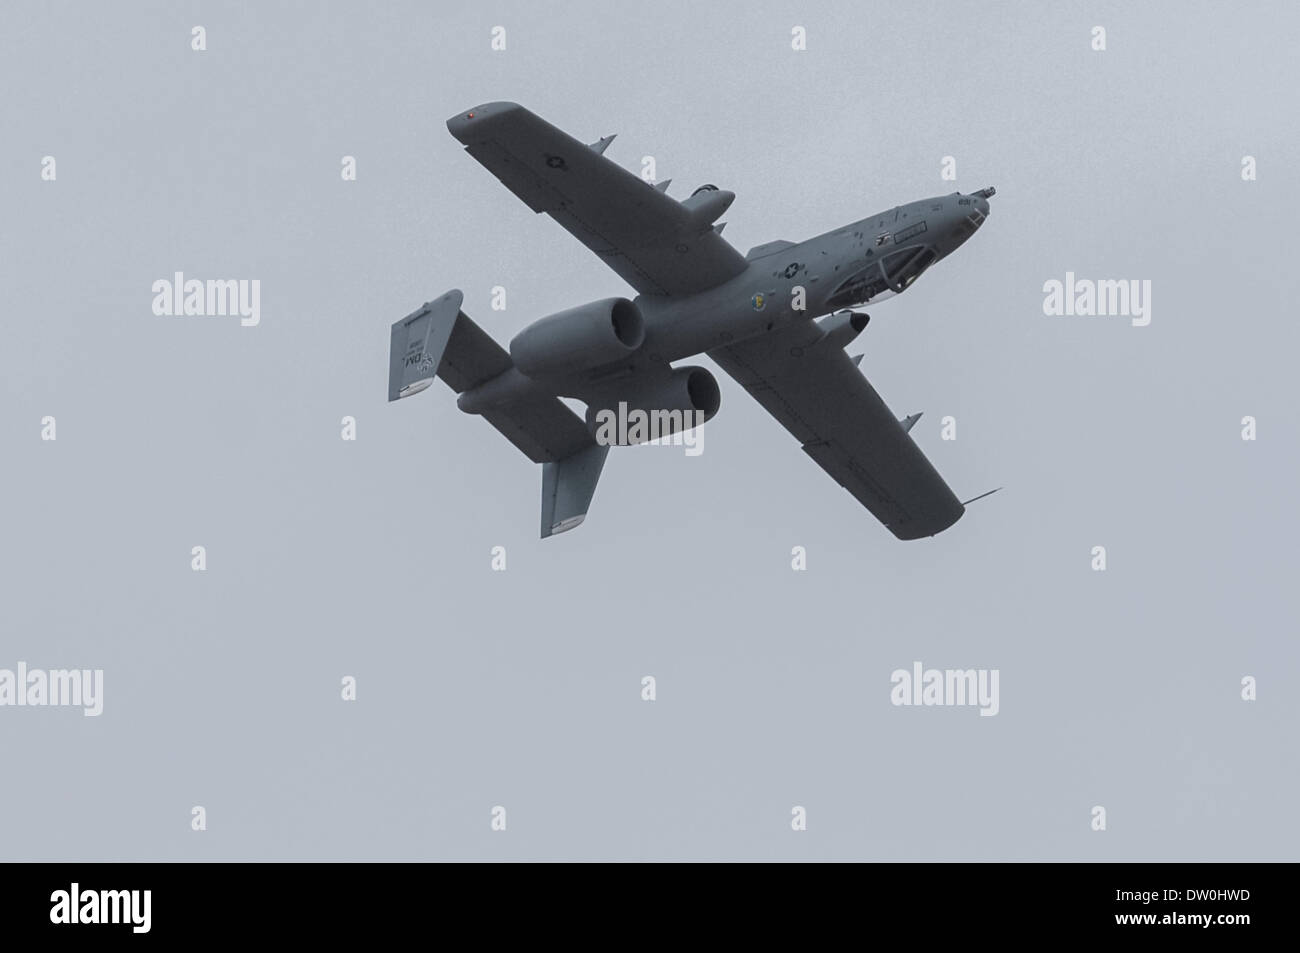 March 17, 2007 - Tucson, Arizona, United States of America - An A-10 aircraft flies inverted over the runway at Davis-Monthan AFB in Tucson, Ariz. in this 2007 file photo. Davis-Monthan is home to the 355th Wing, which supports the A-10. The Pentagon announced yesterday plans to retire the A-10 as a cost-cutting measure to prepare for eventual delivery of the F-35 multipurpose fighter. The A-10 has served since late in the Vietnam War through contemporary fighting in Afghanistan and Iraq. The aircraft is generally praised by pilots and service crews for its survivability and performance. ( - Stock Image